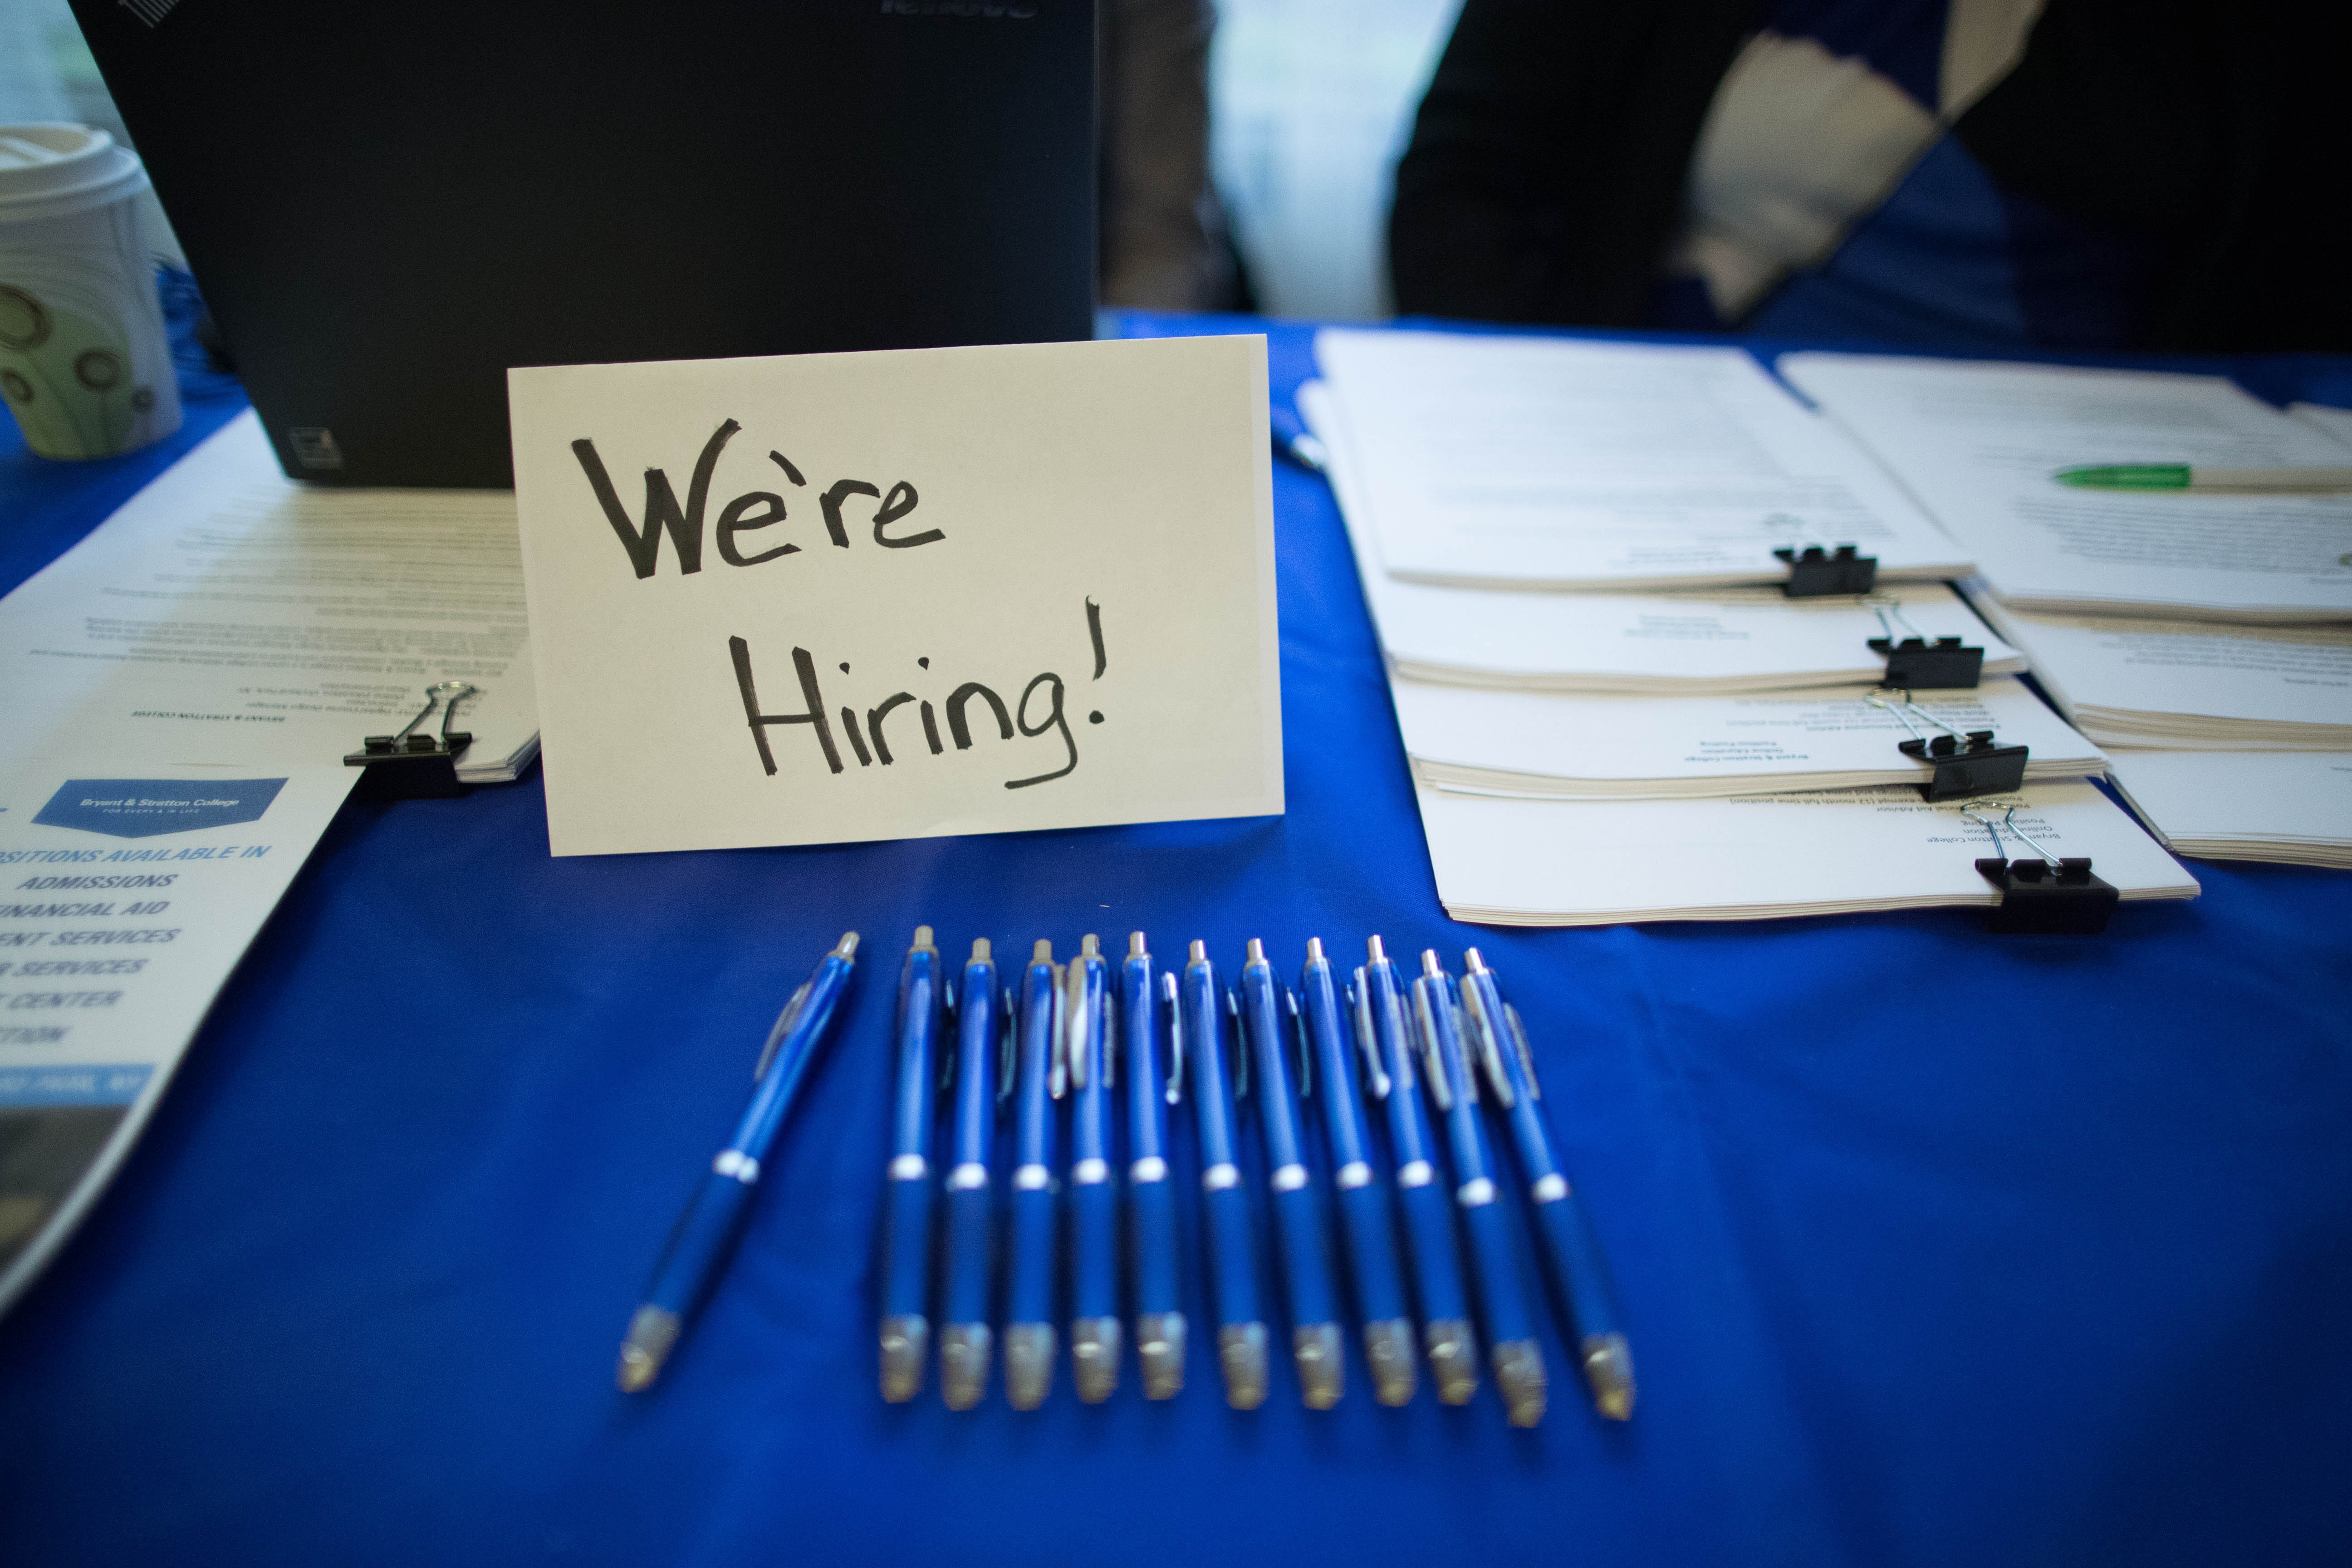 A sign advertises employment on a vendor's table during the Jobsapalooza career fair at the Buffalo Niagara Marriott in Amherst in January.  (Derek Gee/Buffalo News)